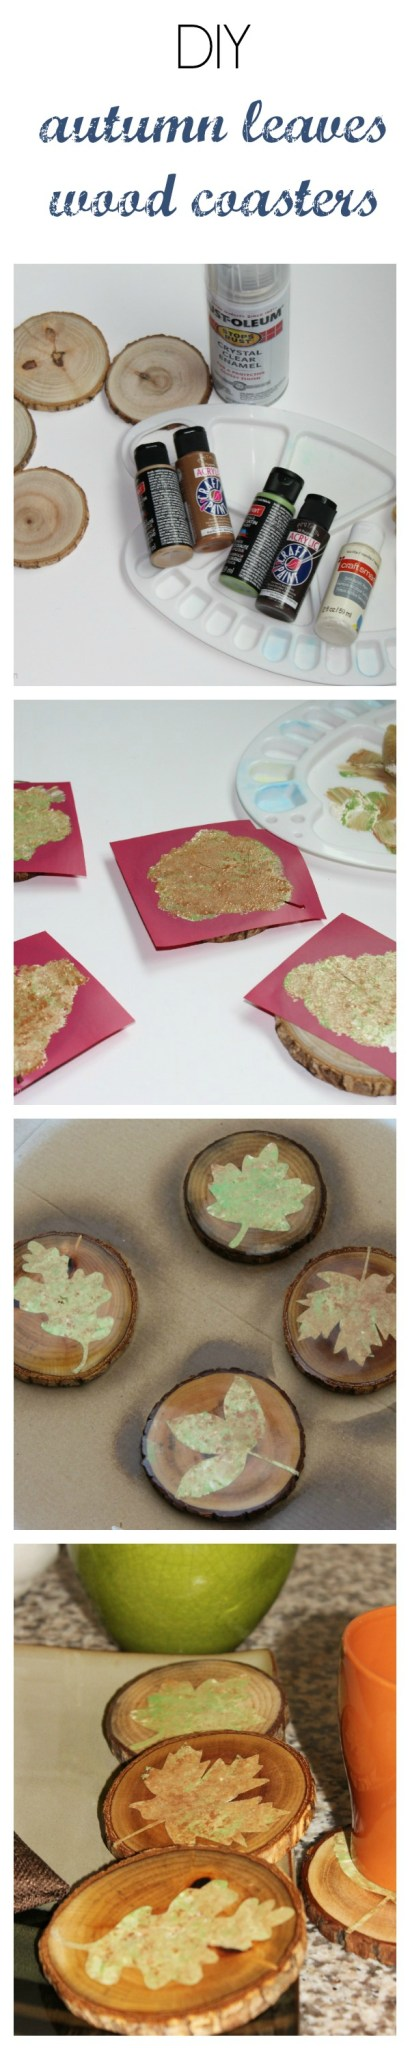 diy-autumn-leaves-wood-coasters-2_3